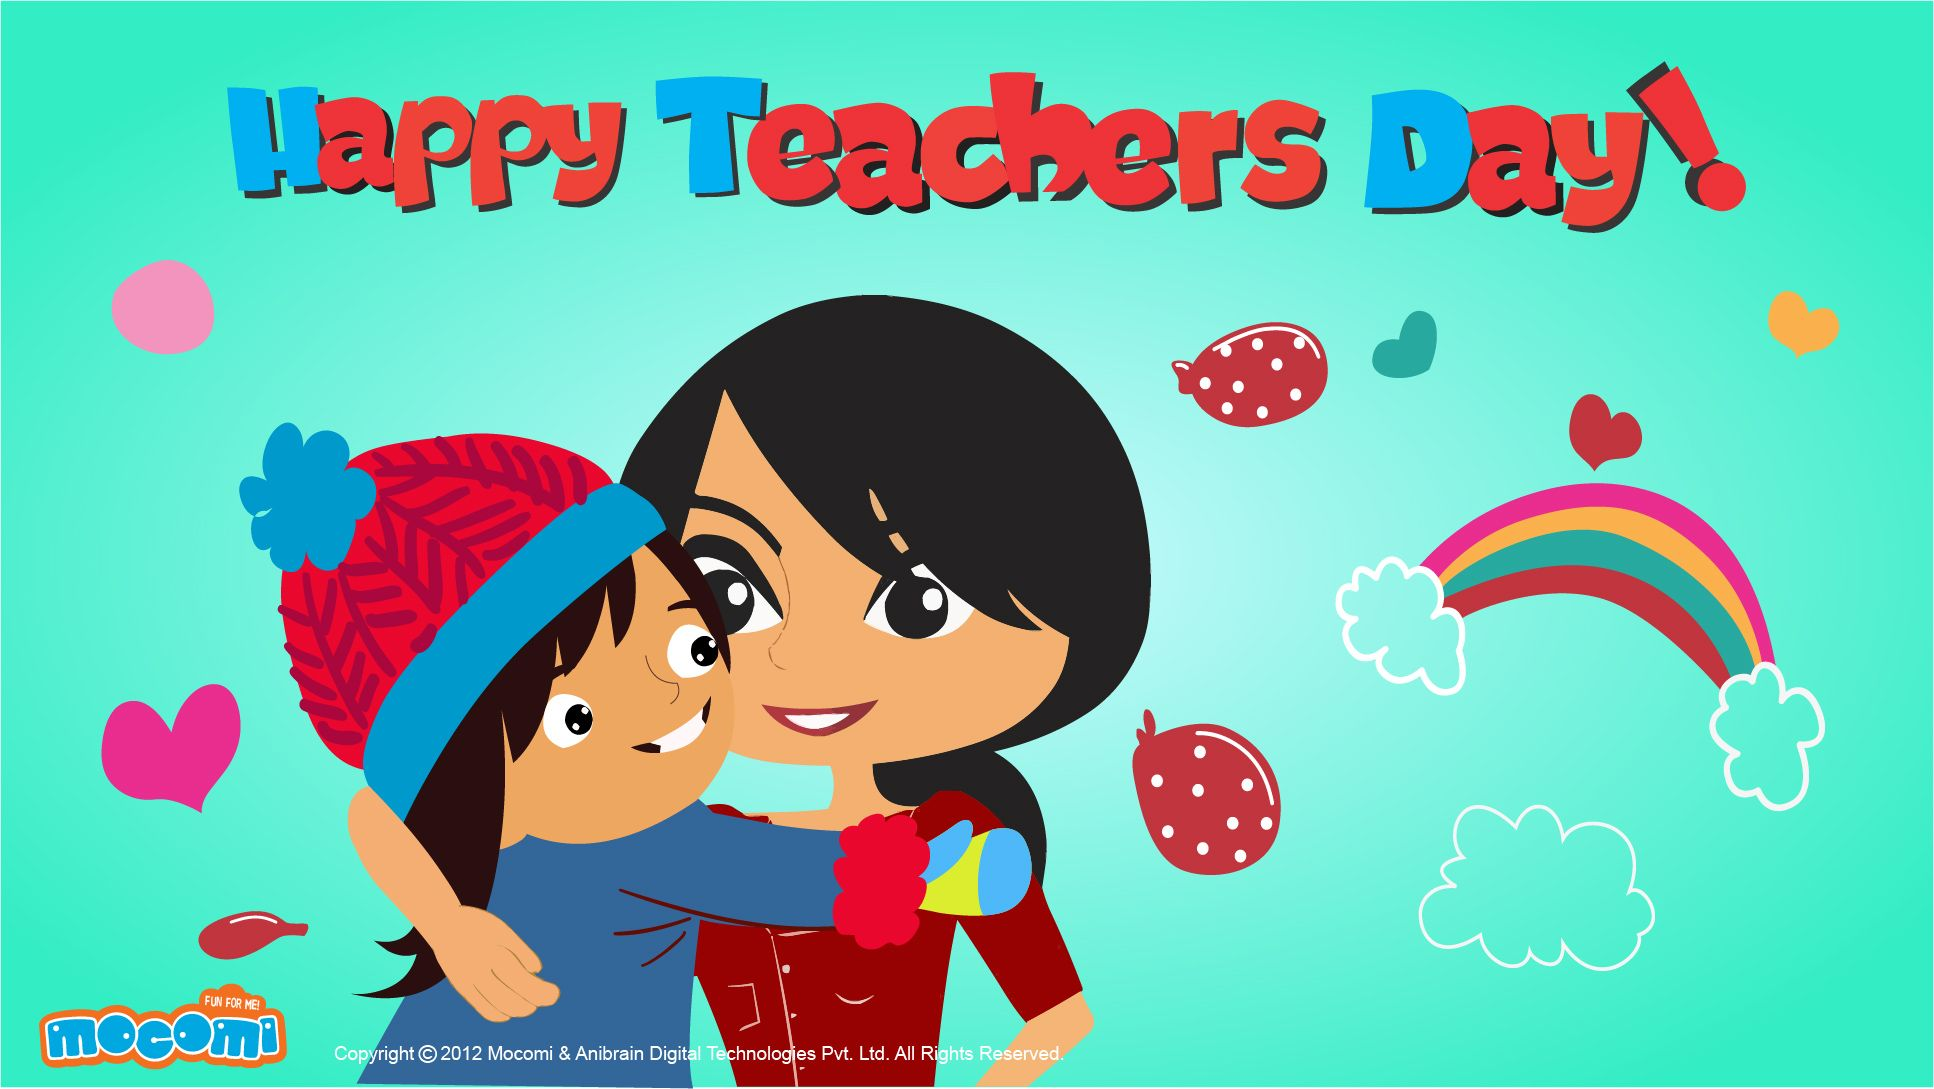 best images about teachers day teachers day 17 best images about teachers day teachers day teachers day and the destiny